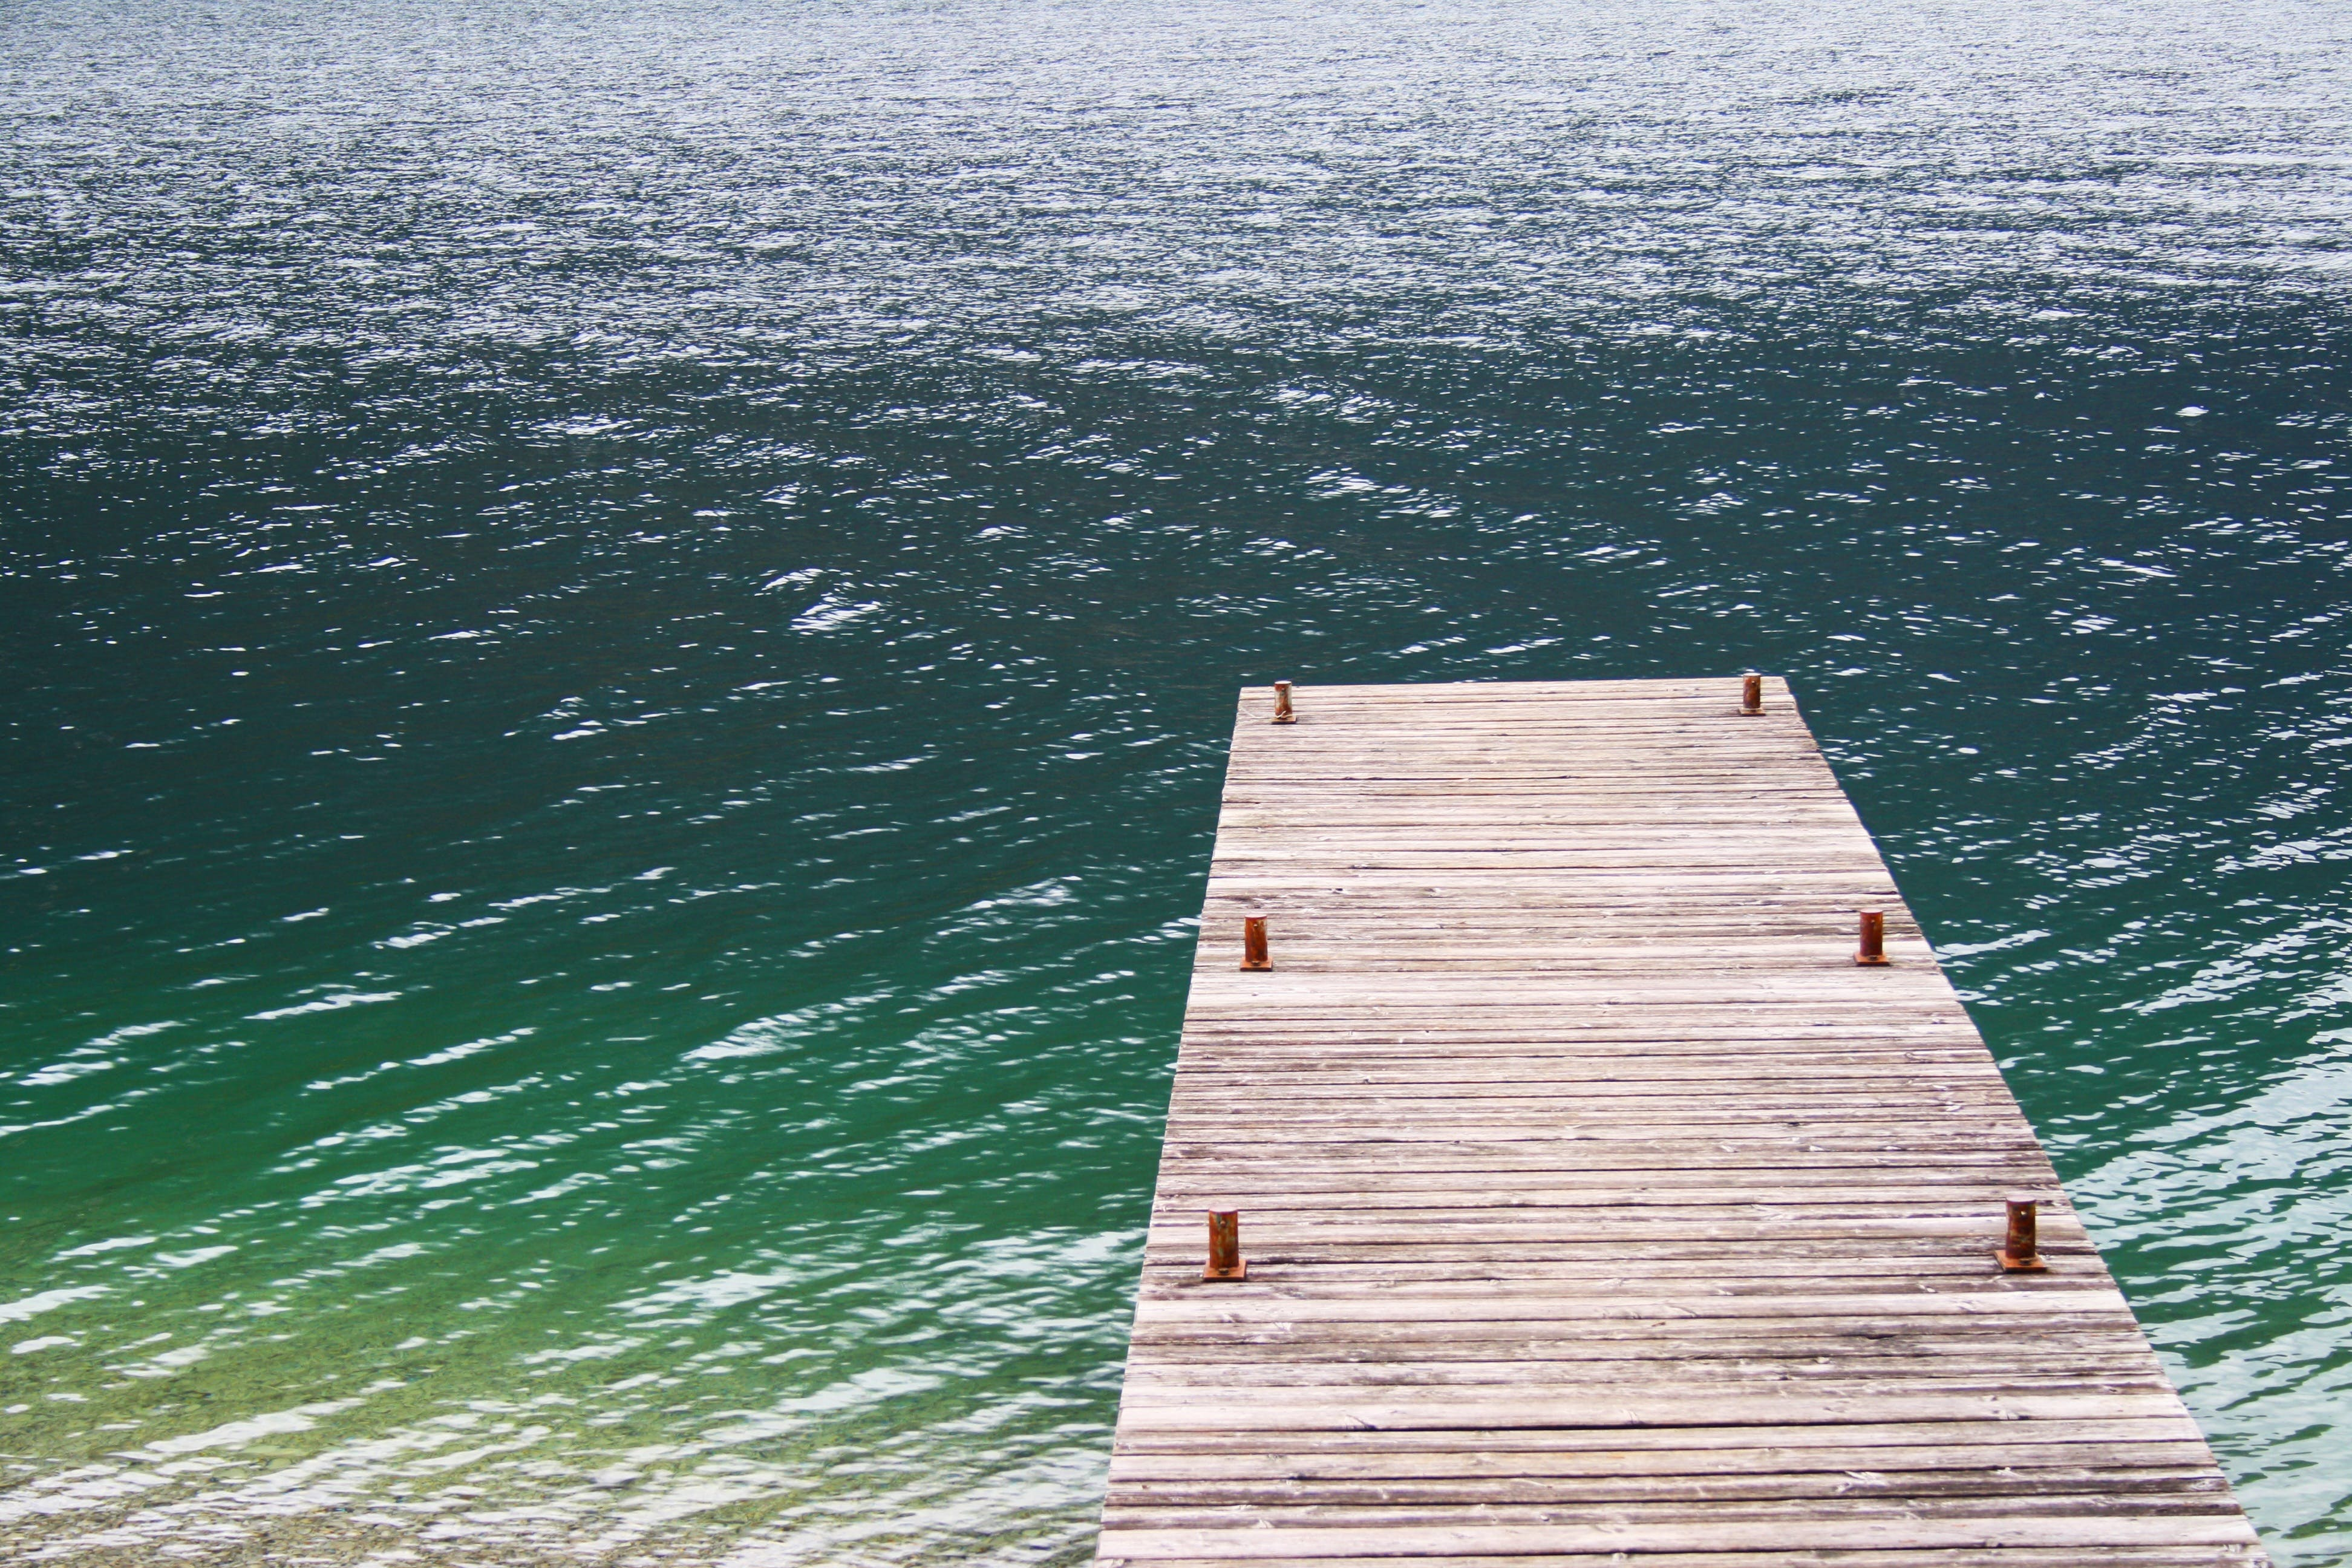 Brown Wooden Dock on Side of Body of Water